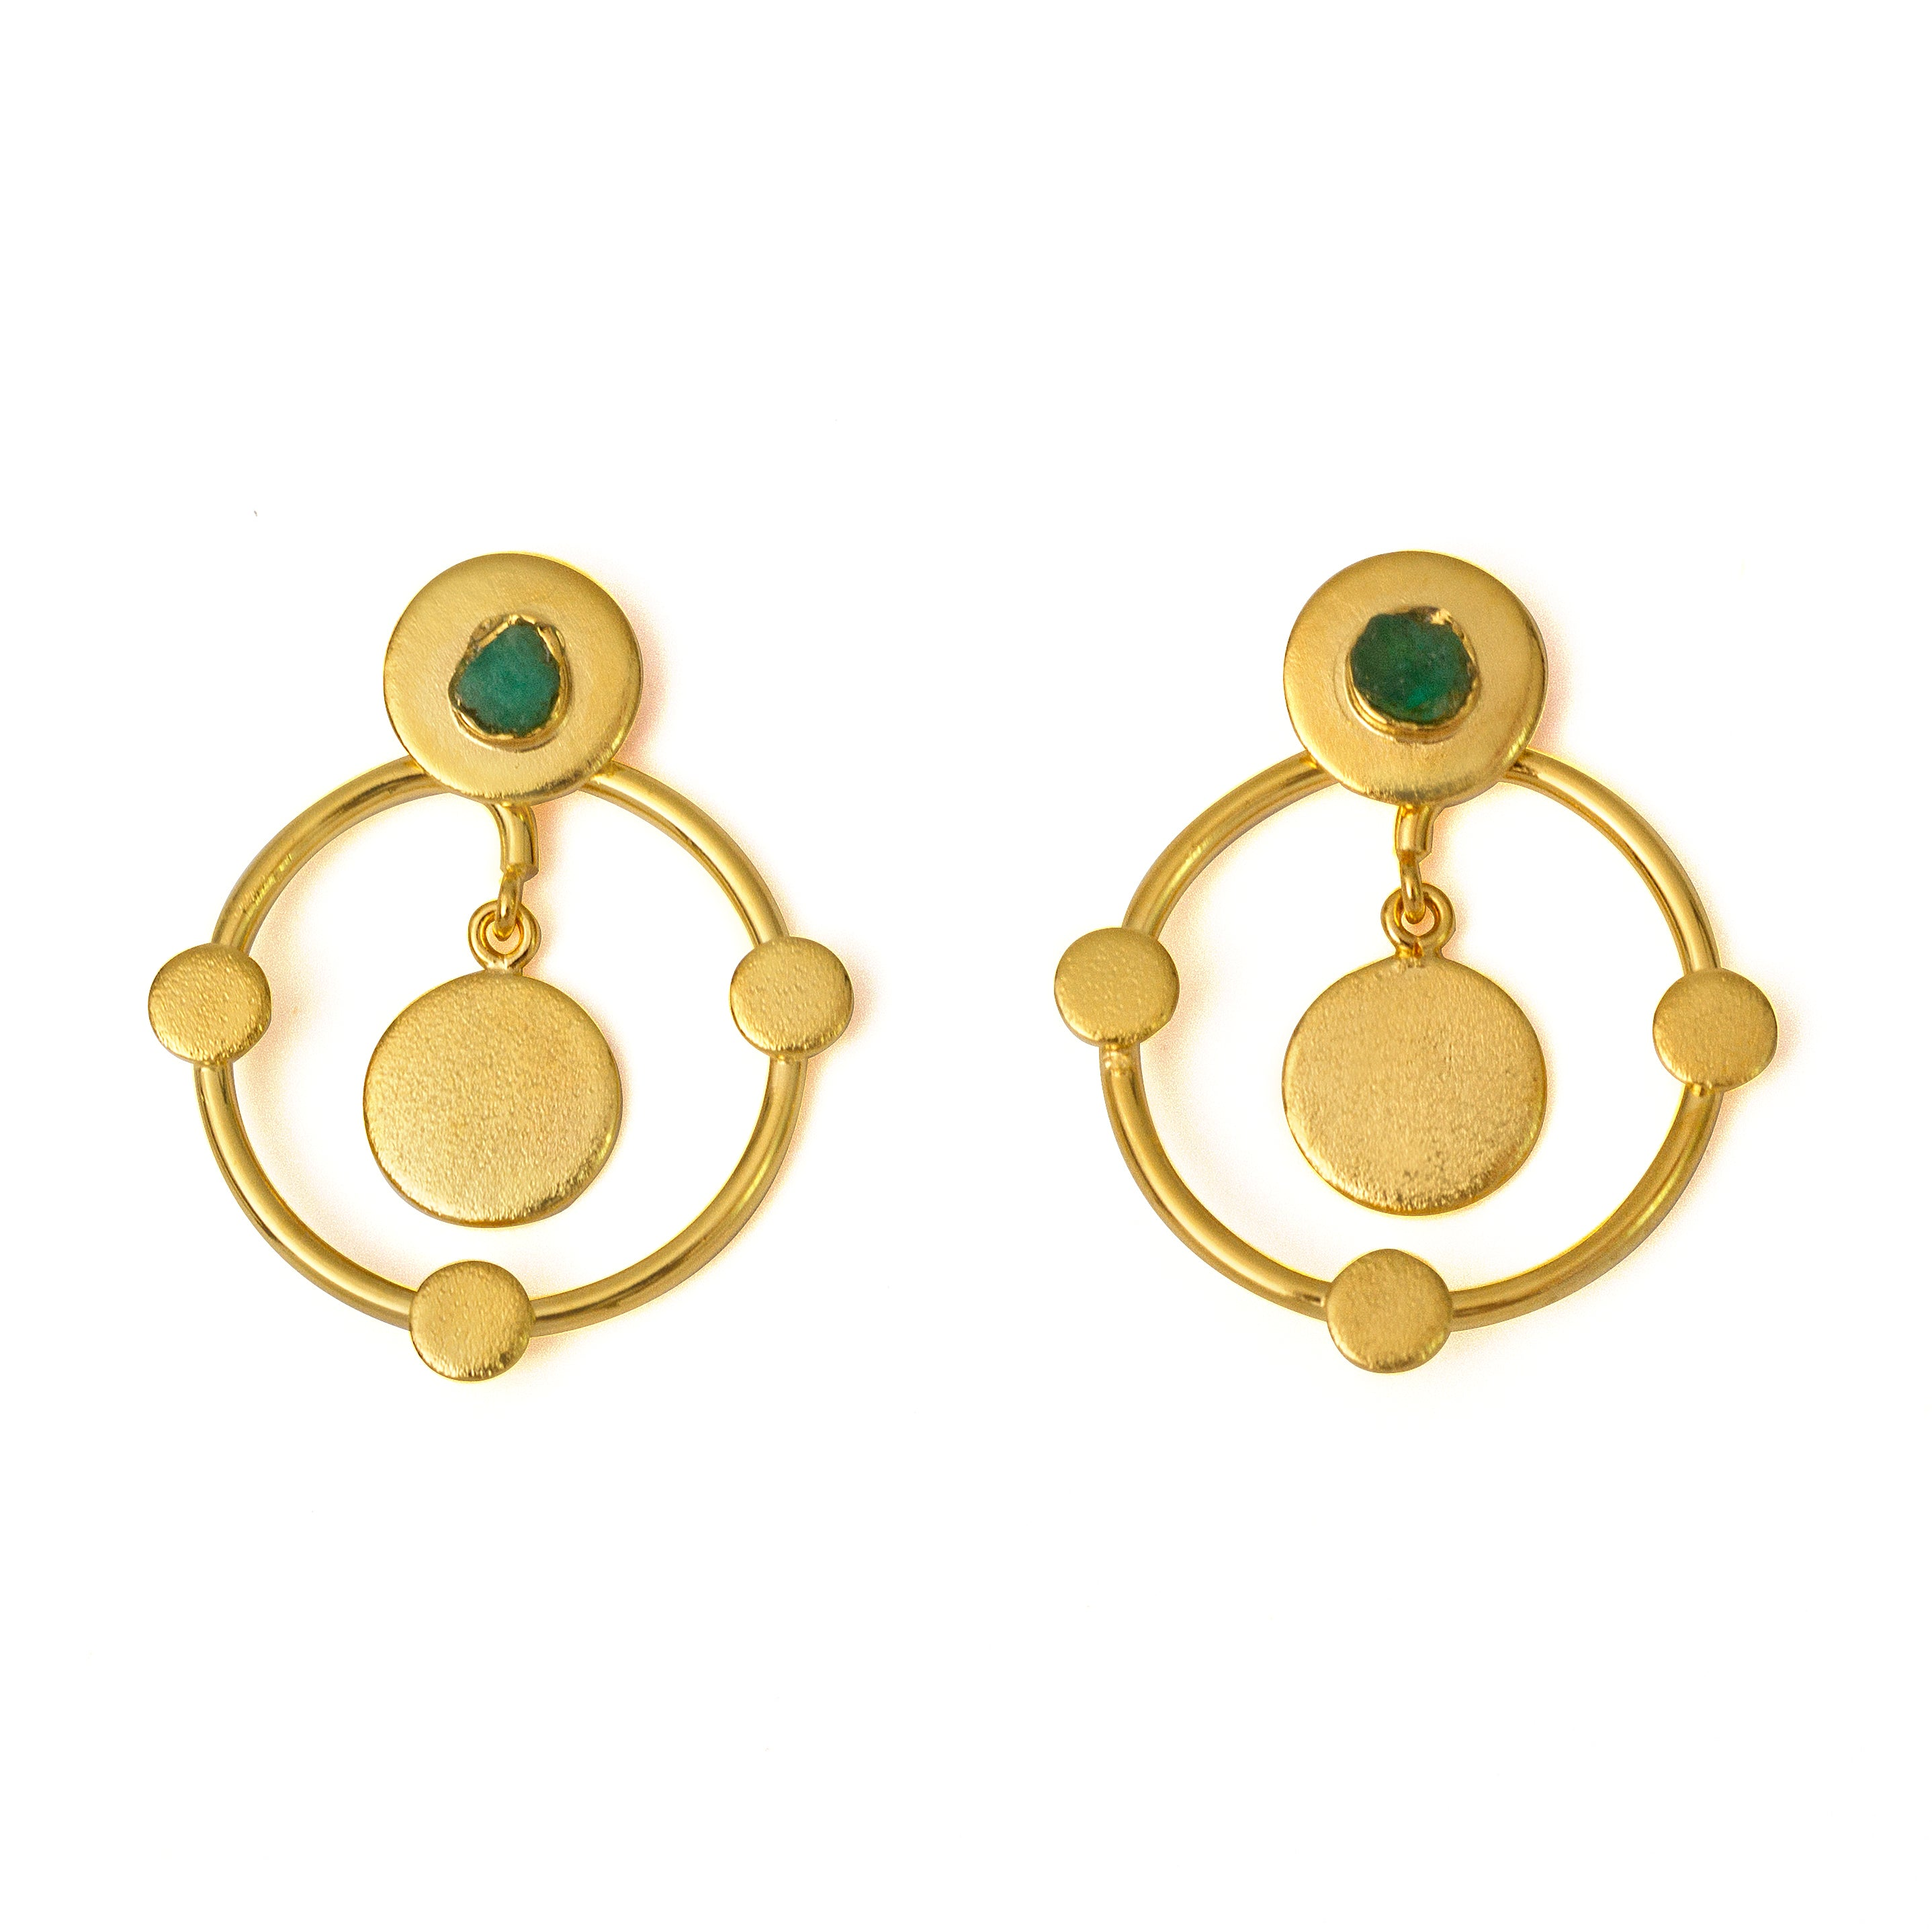 Katia Sefirot Collection 2 In 1 XL Earrings - TAO Company Jewelry